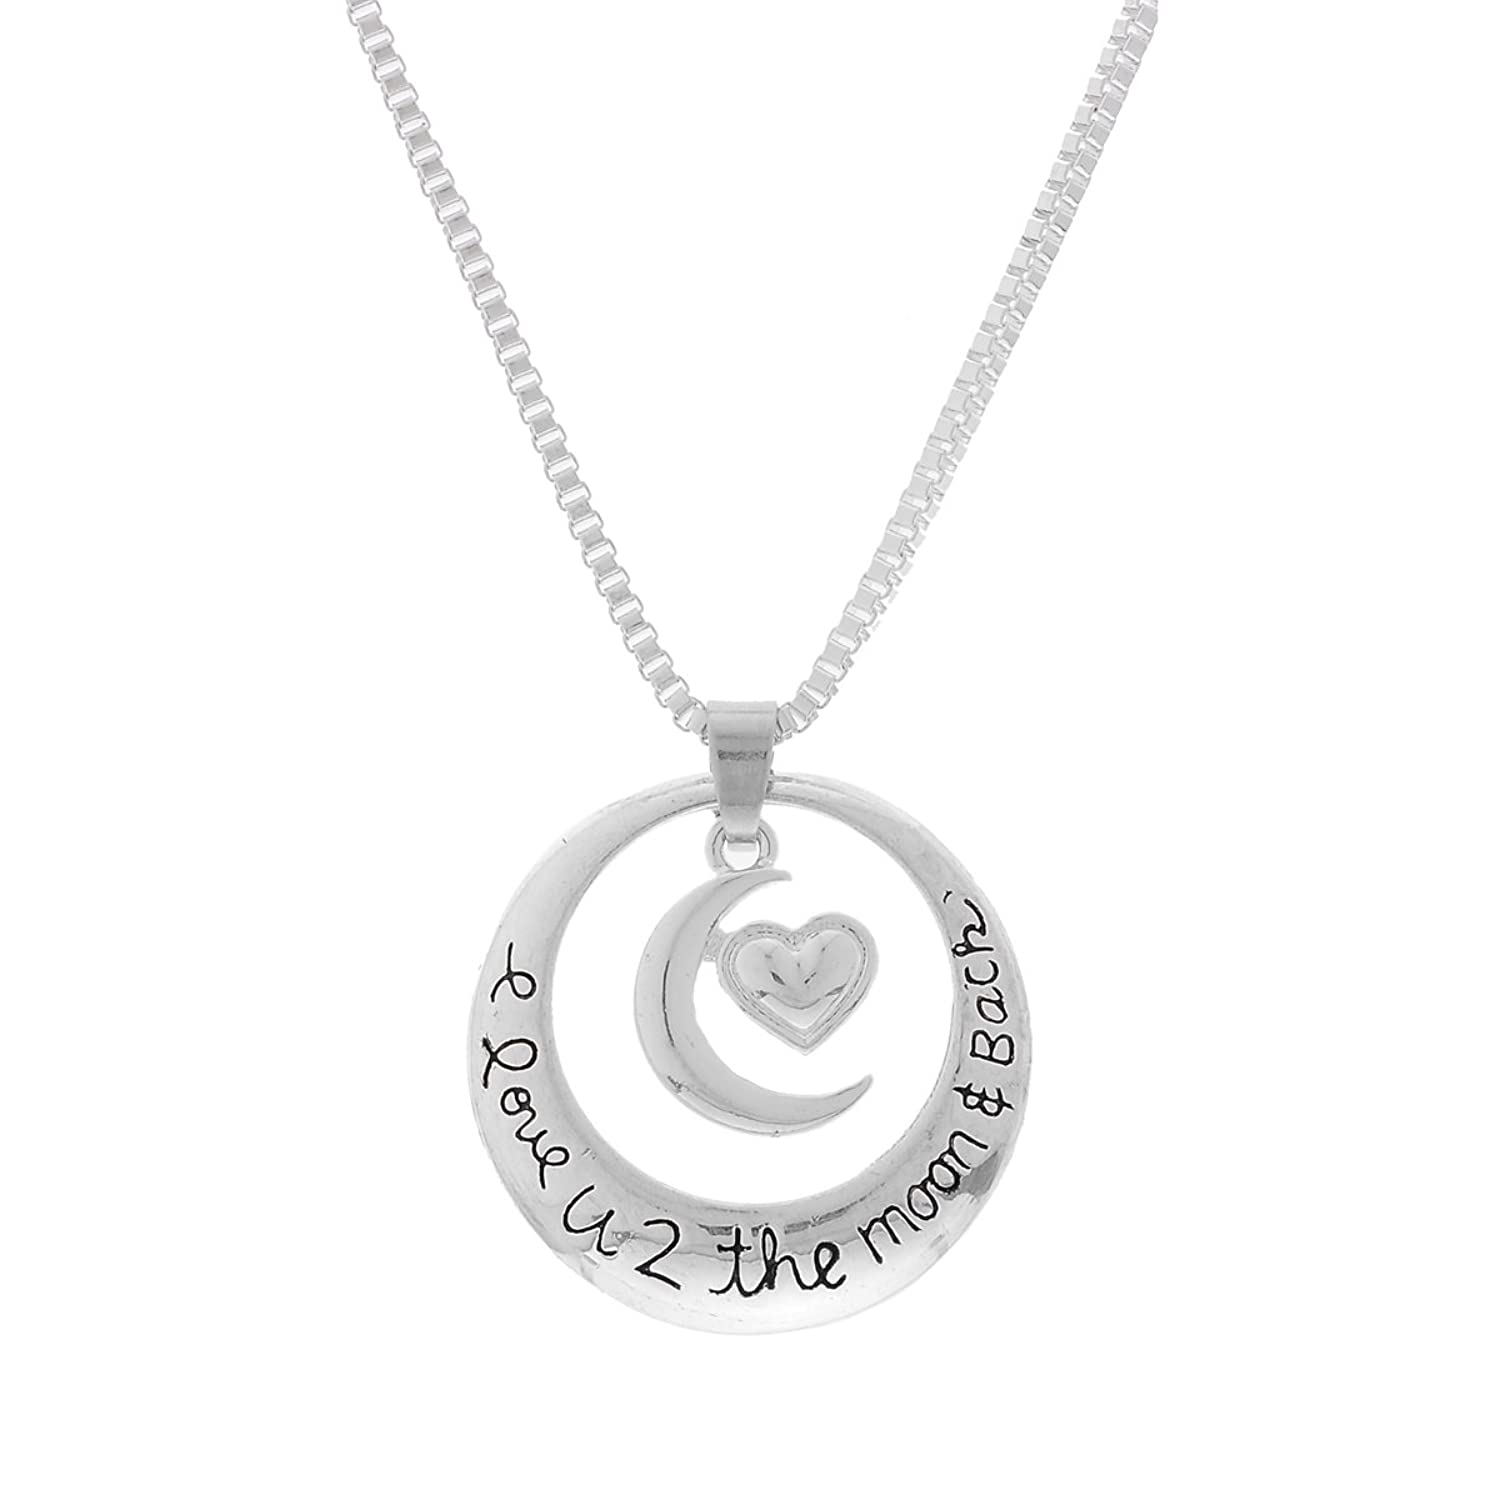 Encounter Silver Plated I Love You To The Moon and Back Sun Moon Hug Heart Pendant Necklace 46.8 cm подушка printio love you to the moon and back